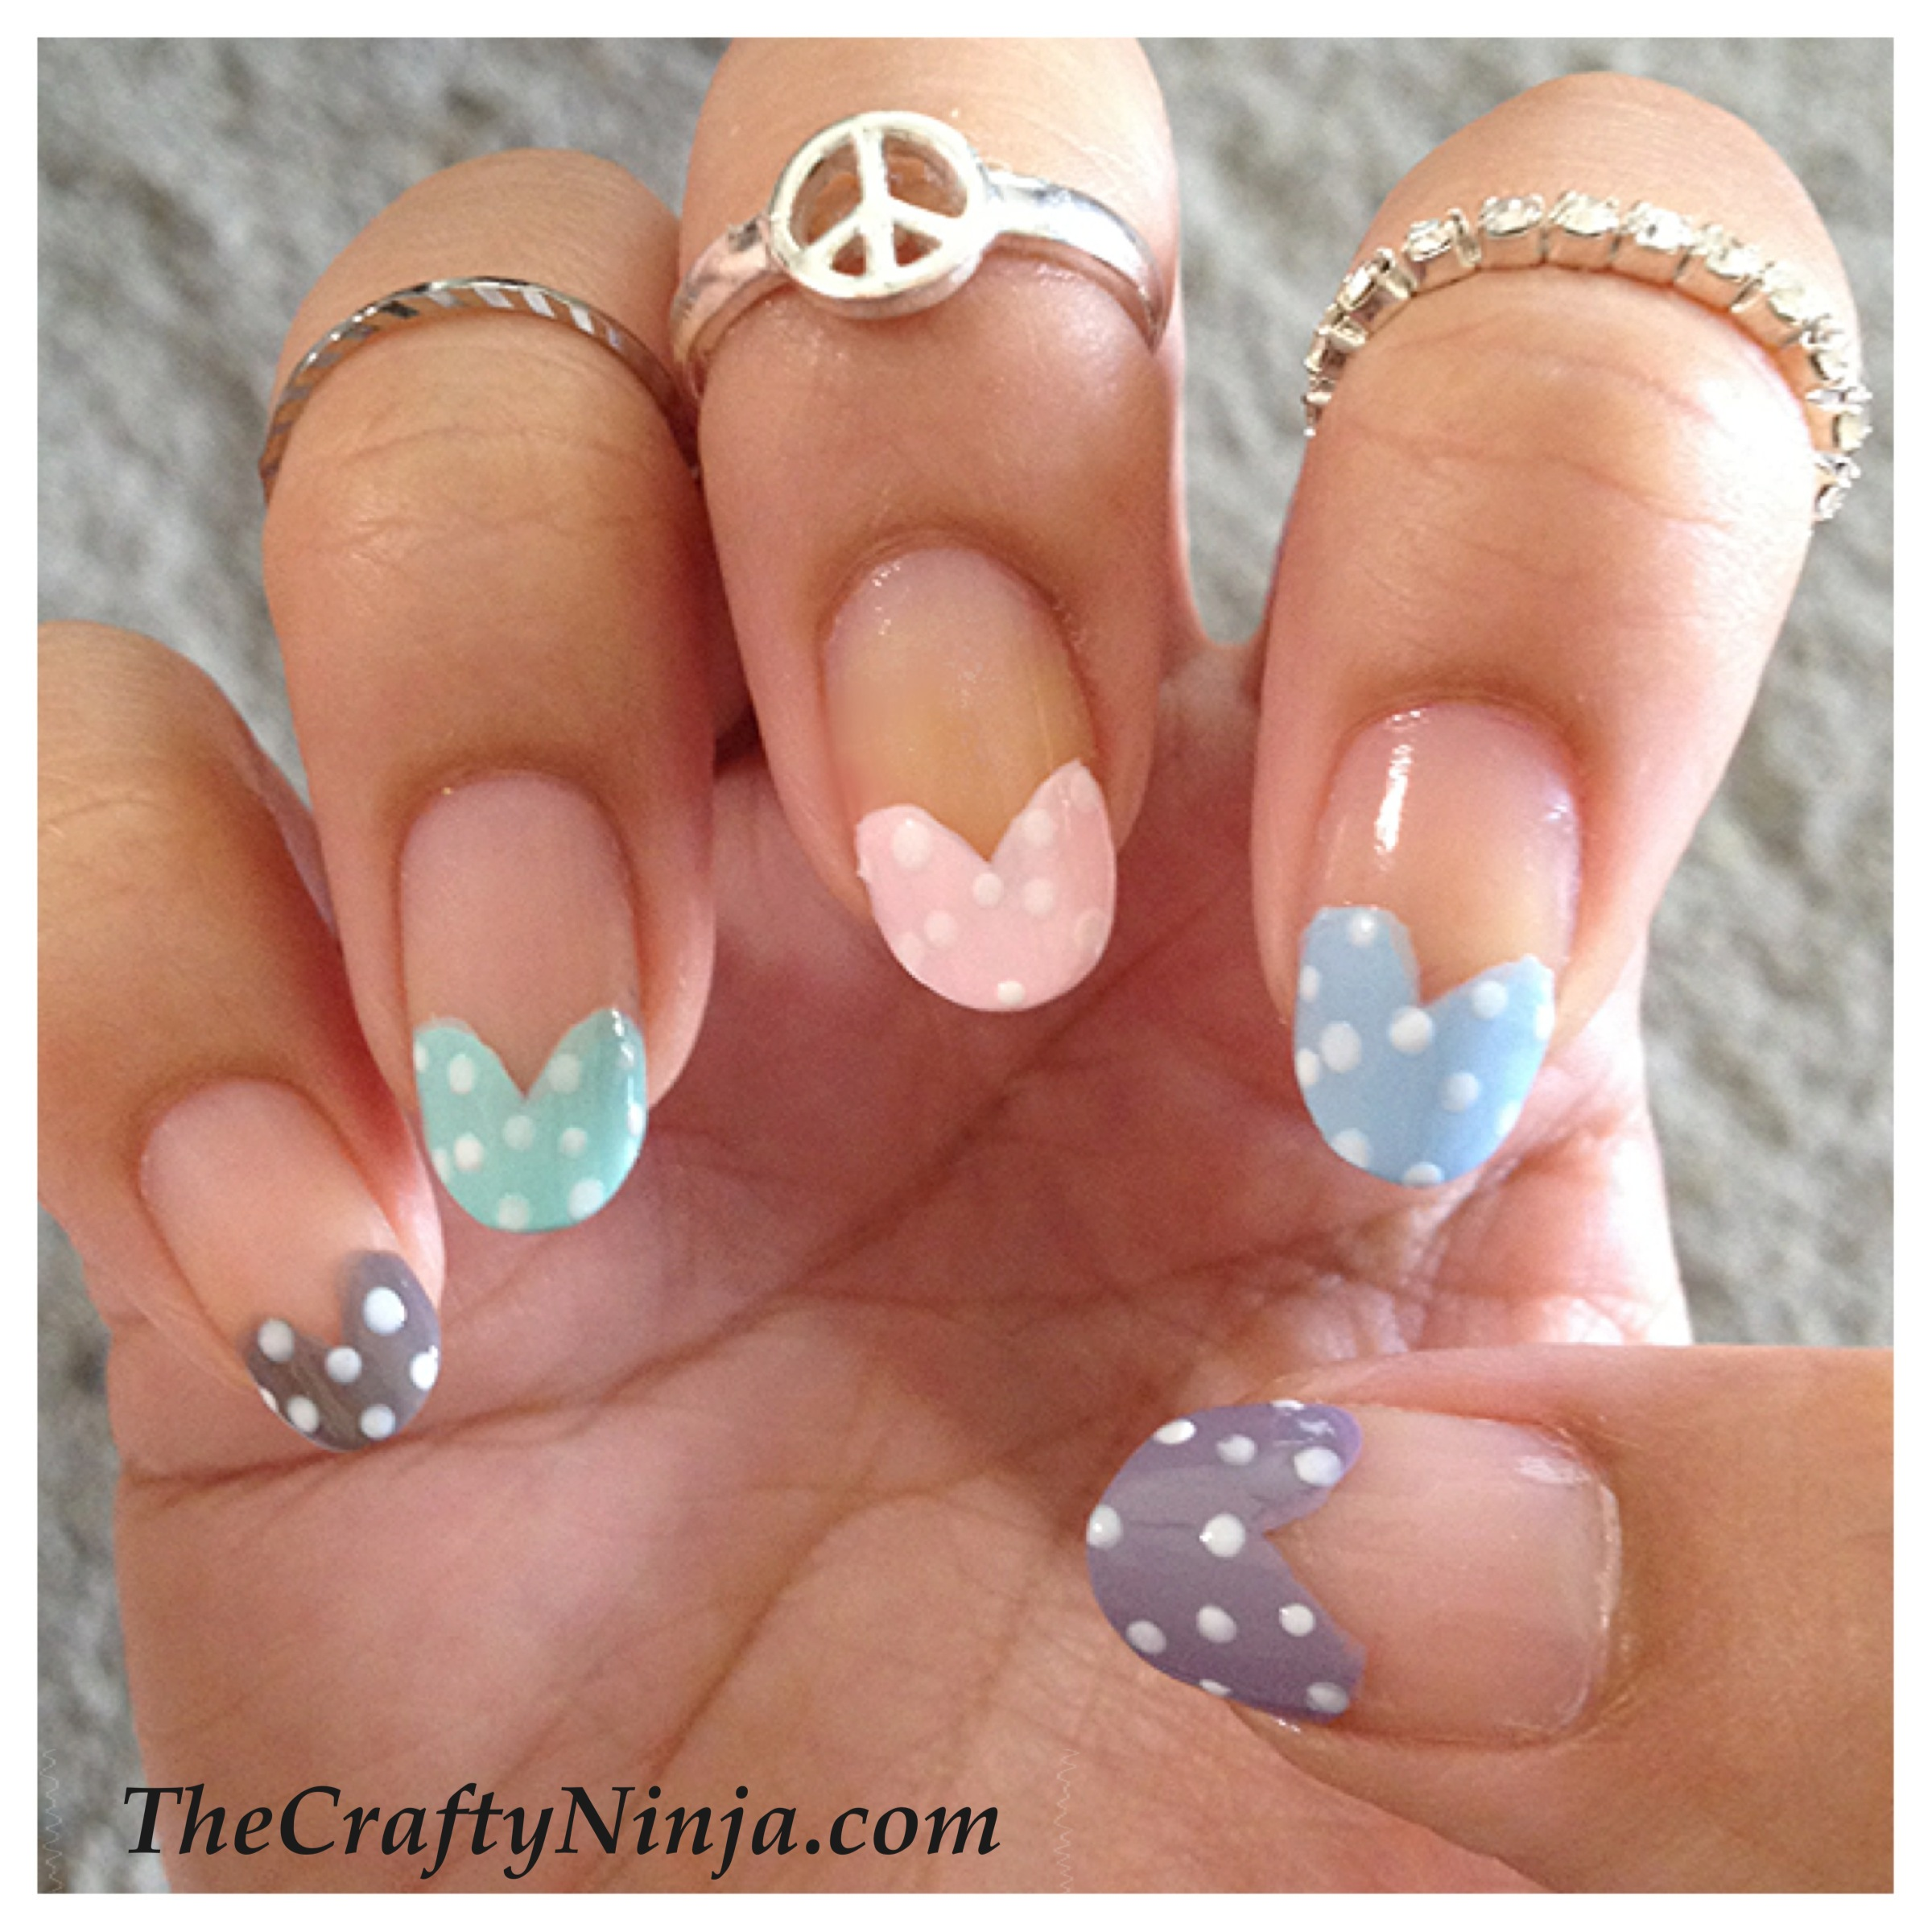 Heart Tip Nails | The Crafty Ninja